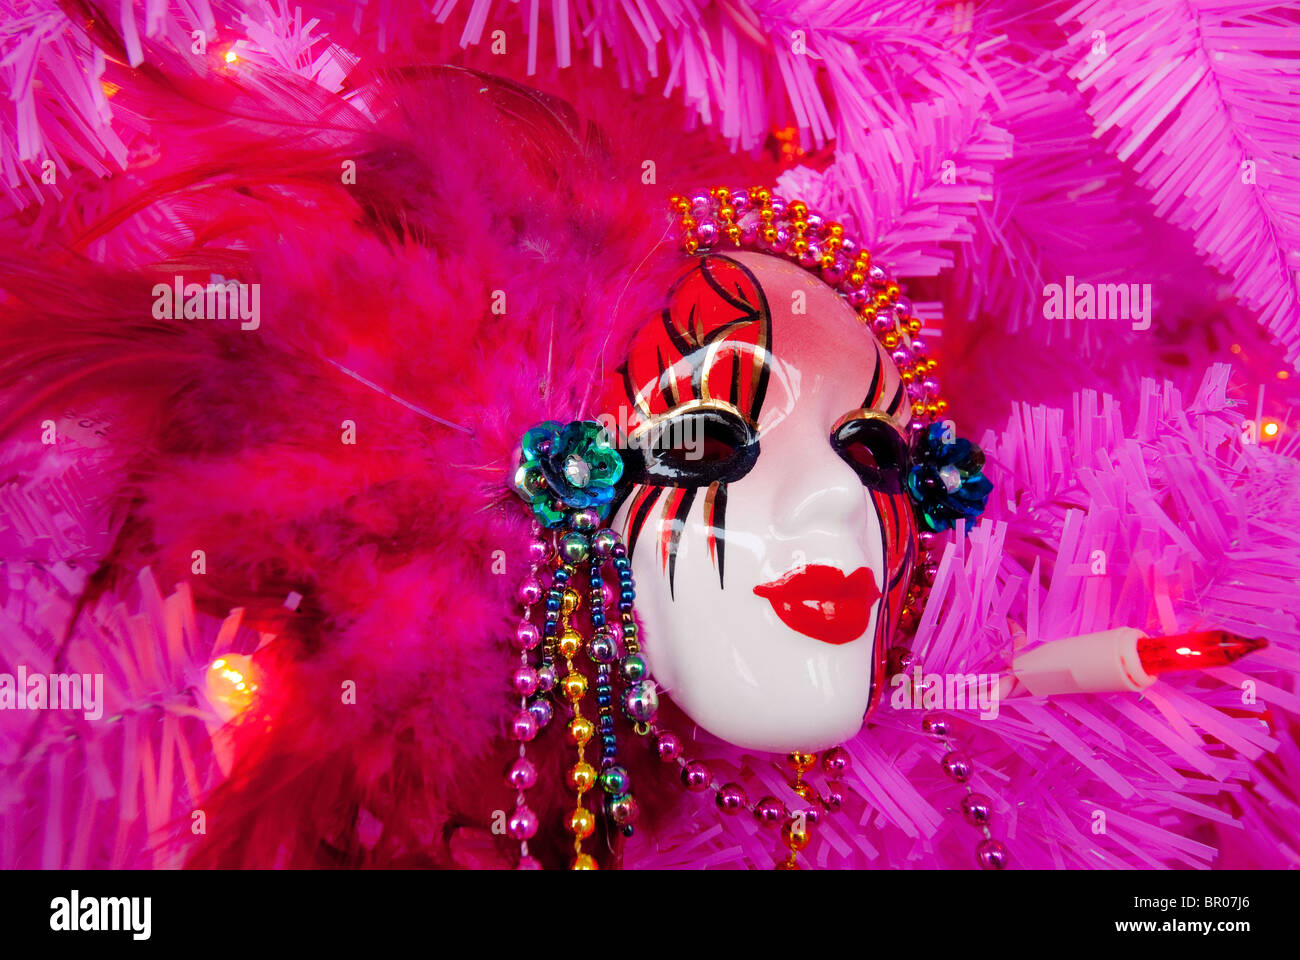 Mardi Gras mask in New Orleans, Louisiana, USA - Stock Image